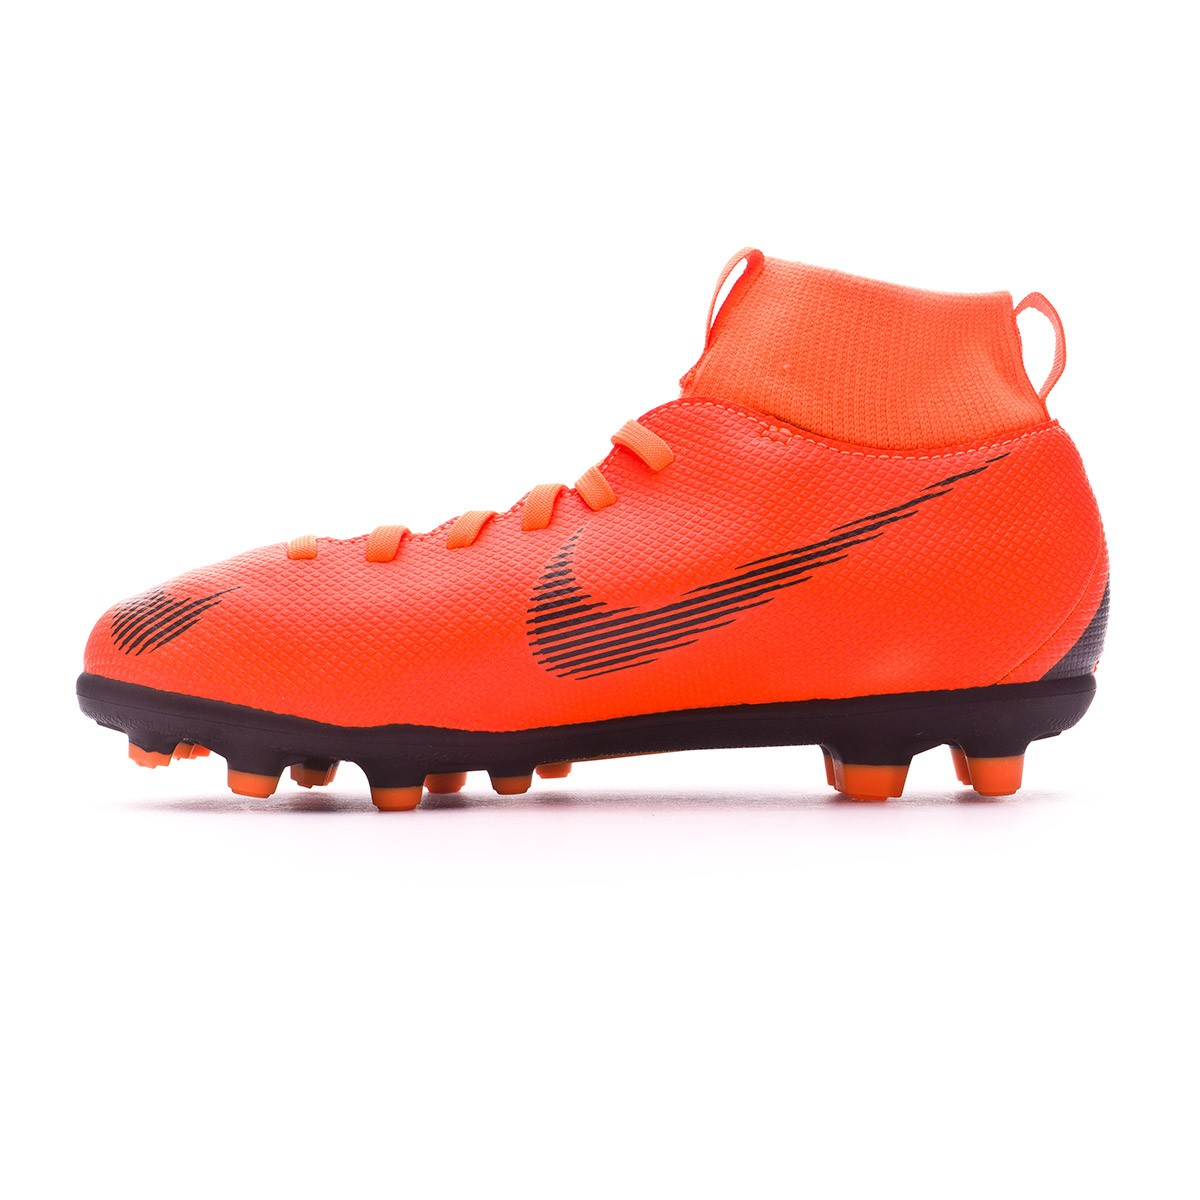 more photos 15302 8139e Boot Nike Kids Mercurial Superfly VI Club MG Total orange-Black-Volt -  Leaked soccer